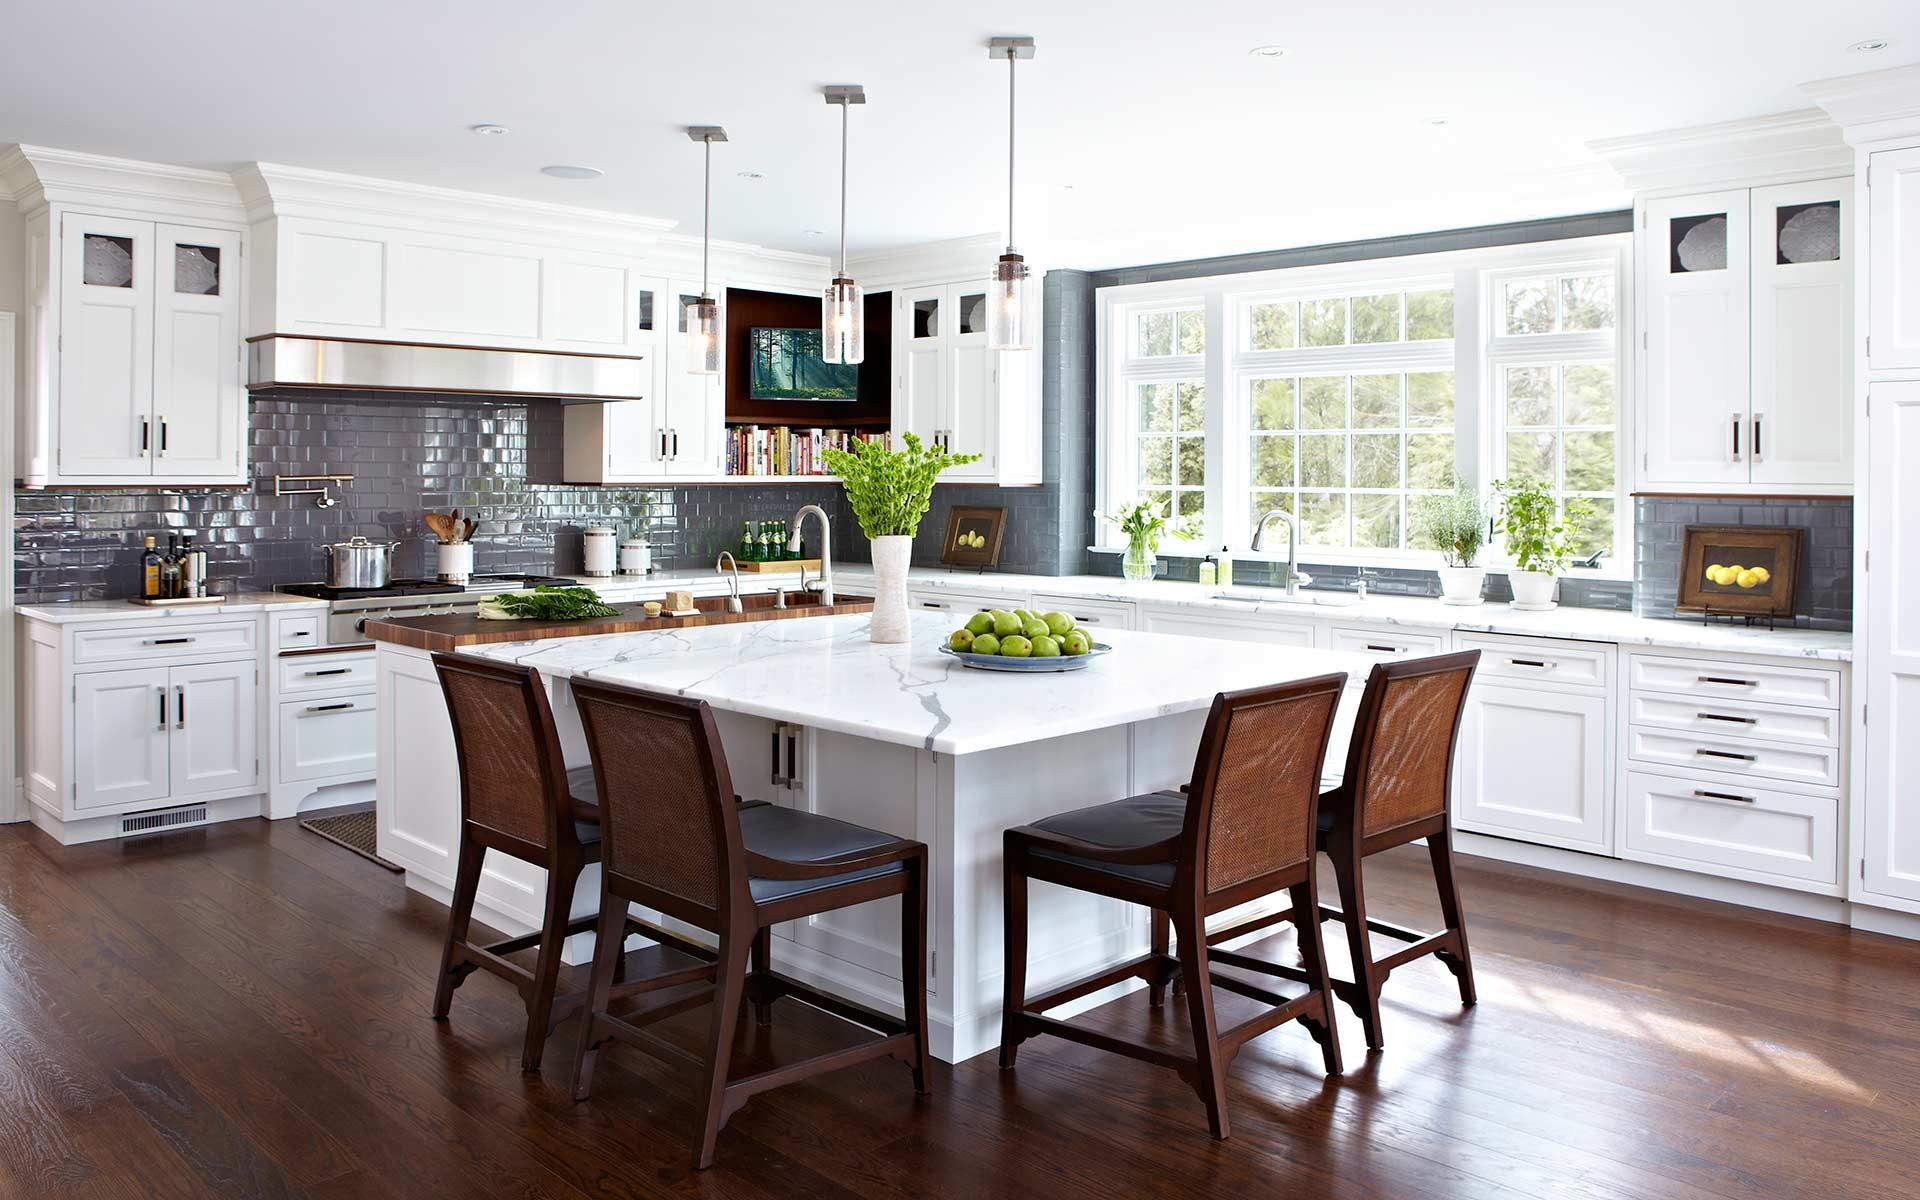 Get Your Chef On Deane Inc With Images Kitchen Design Kitchen Design Small Kitchen Remodel